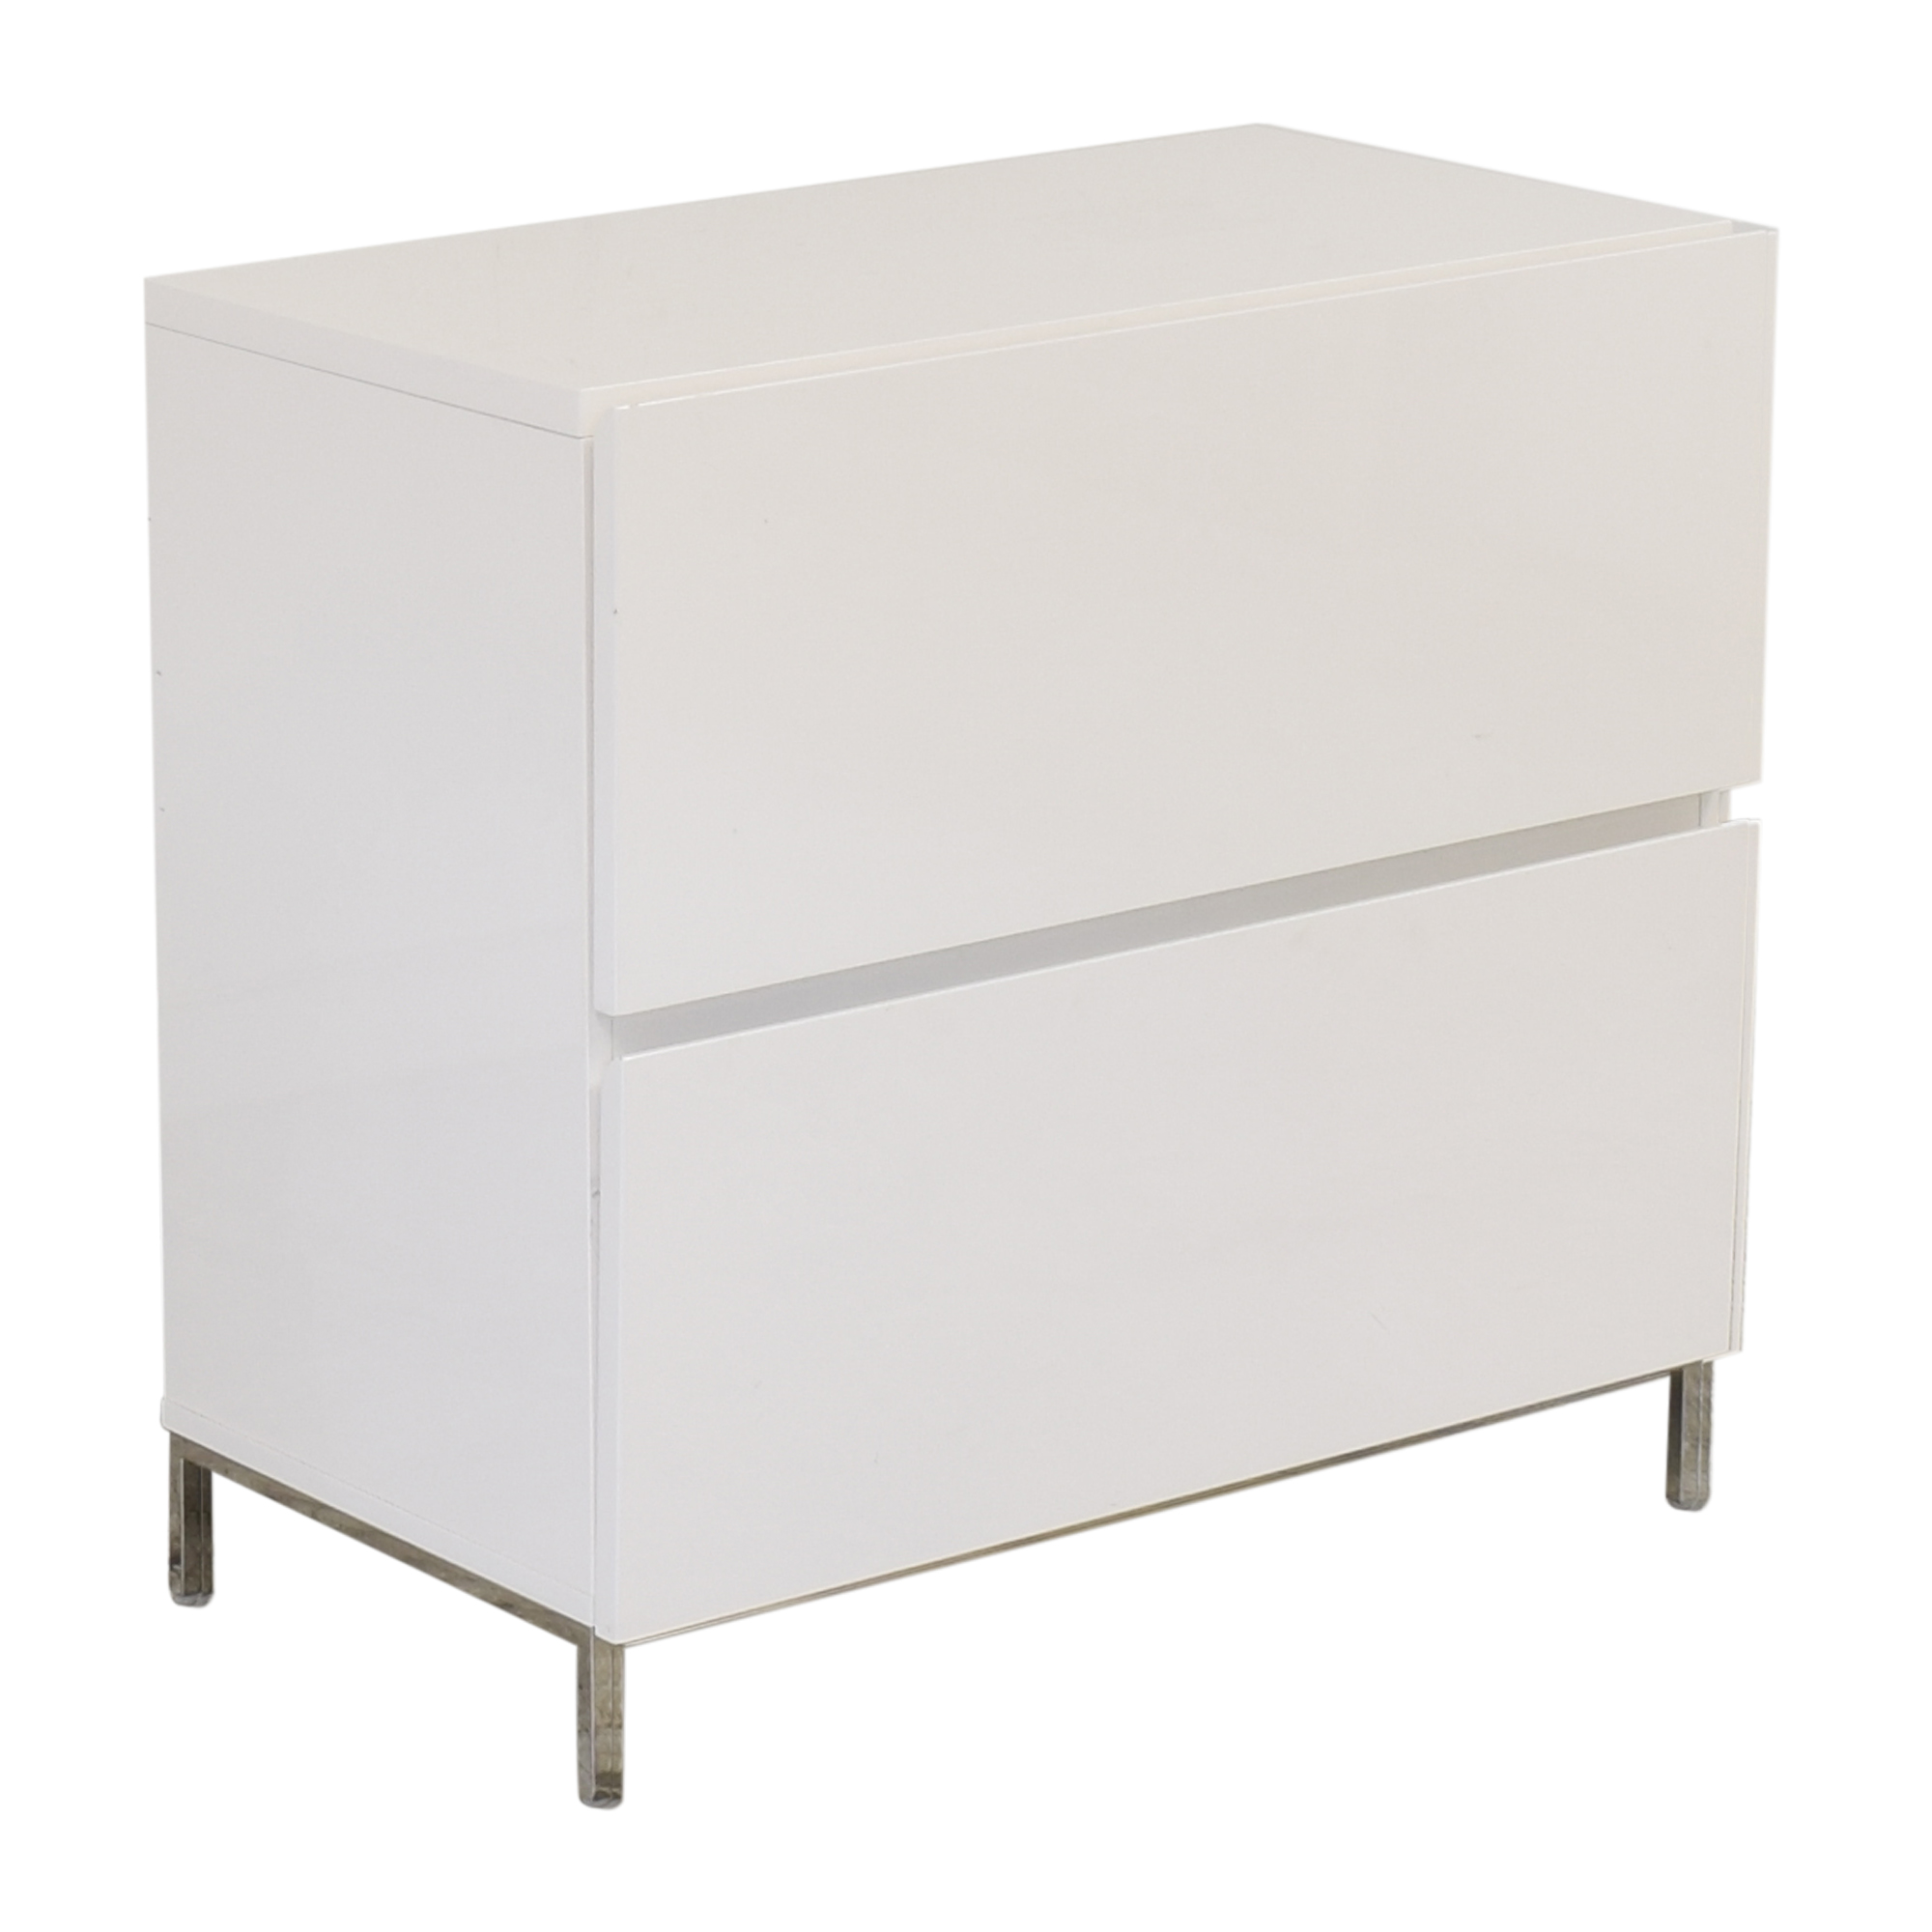 West Elm West Elm Lacquer Storage Modular Lateral File Cabinet Storage